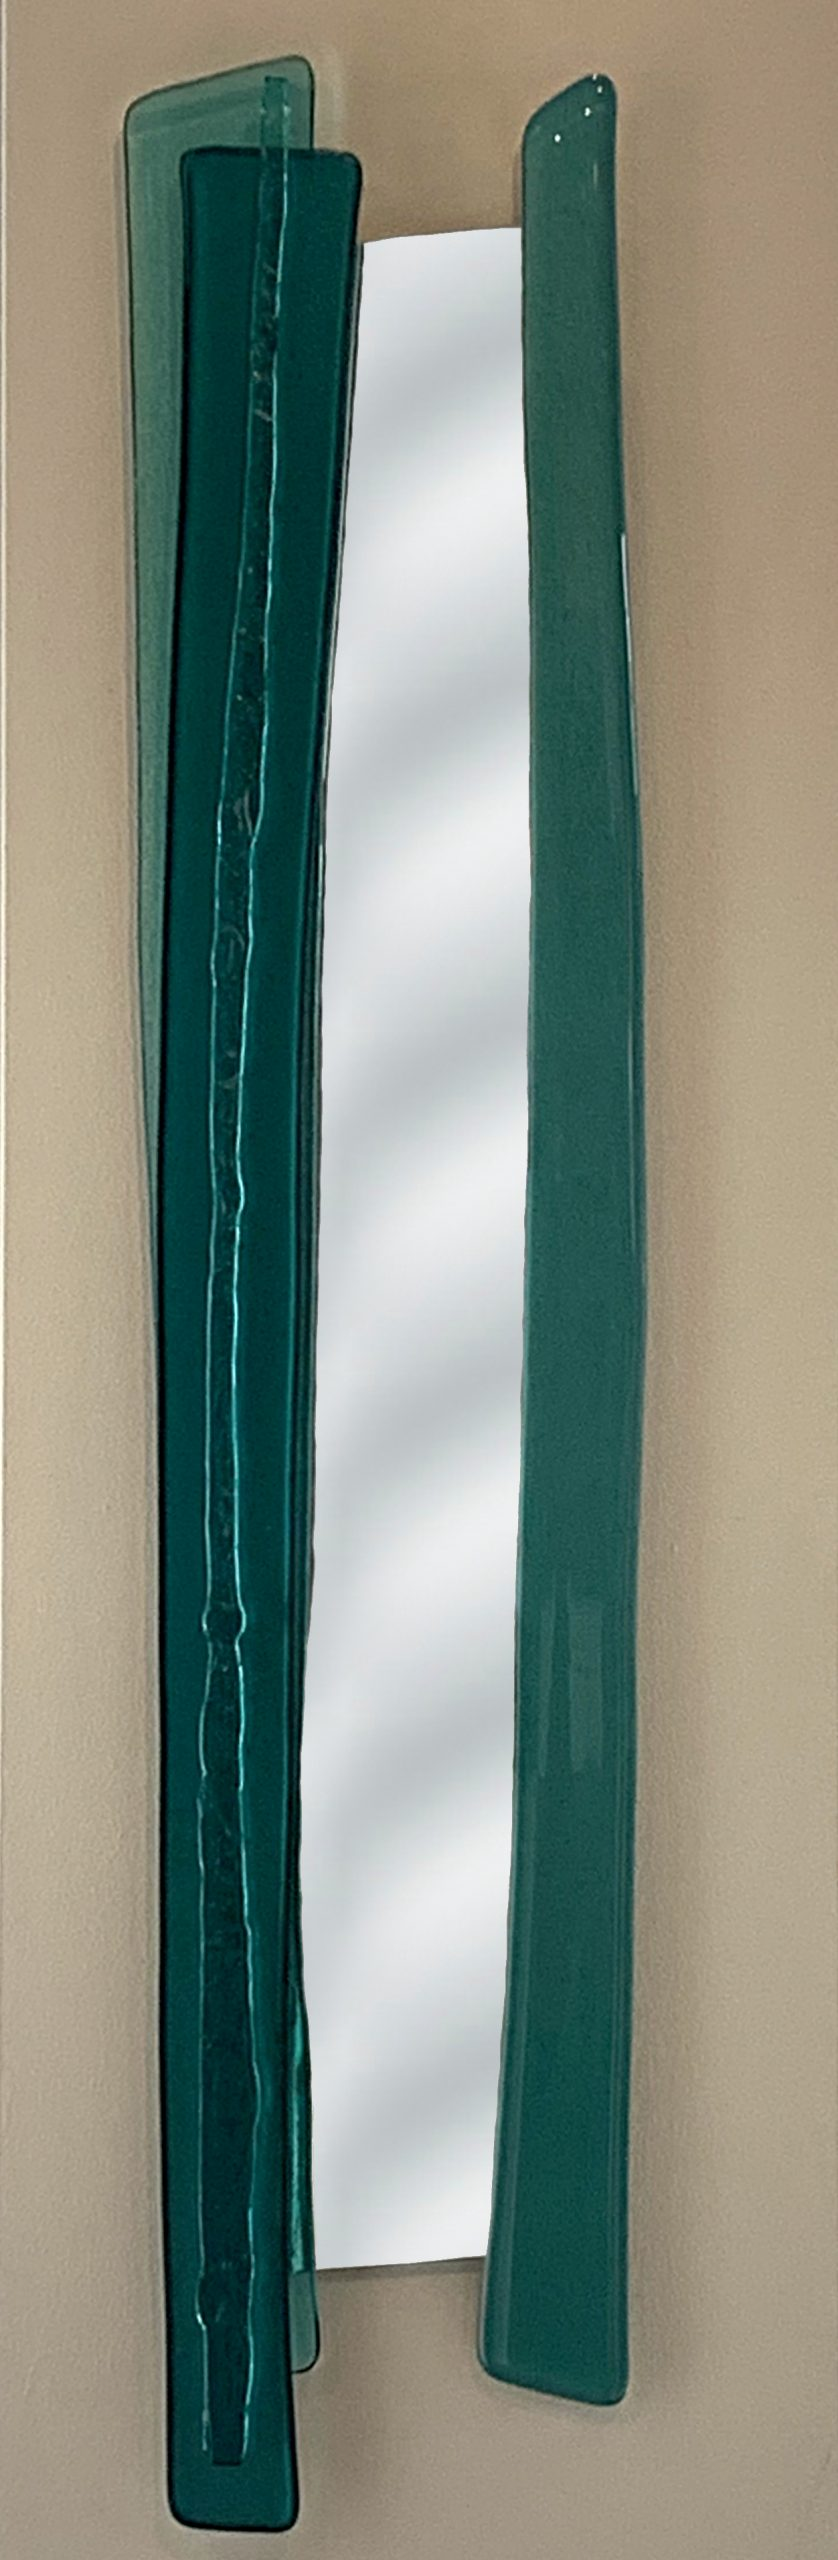 Reflections 8, cast glass mirror by Heather Cuell | Effusion Art Gallery + Cast Glass Studio, Invermere BC